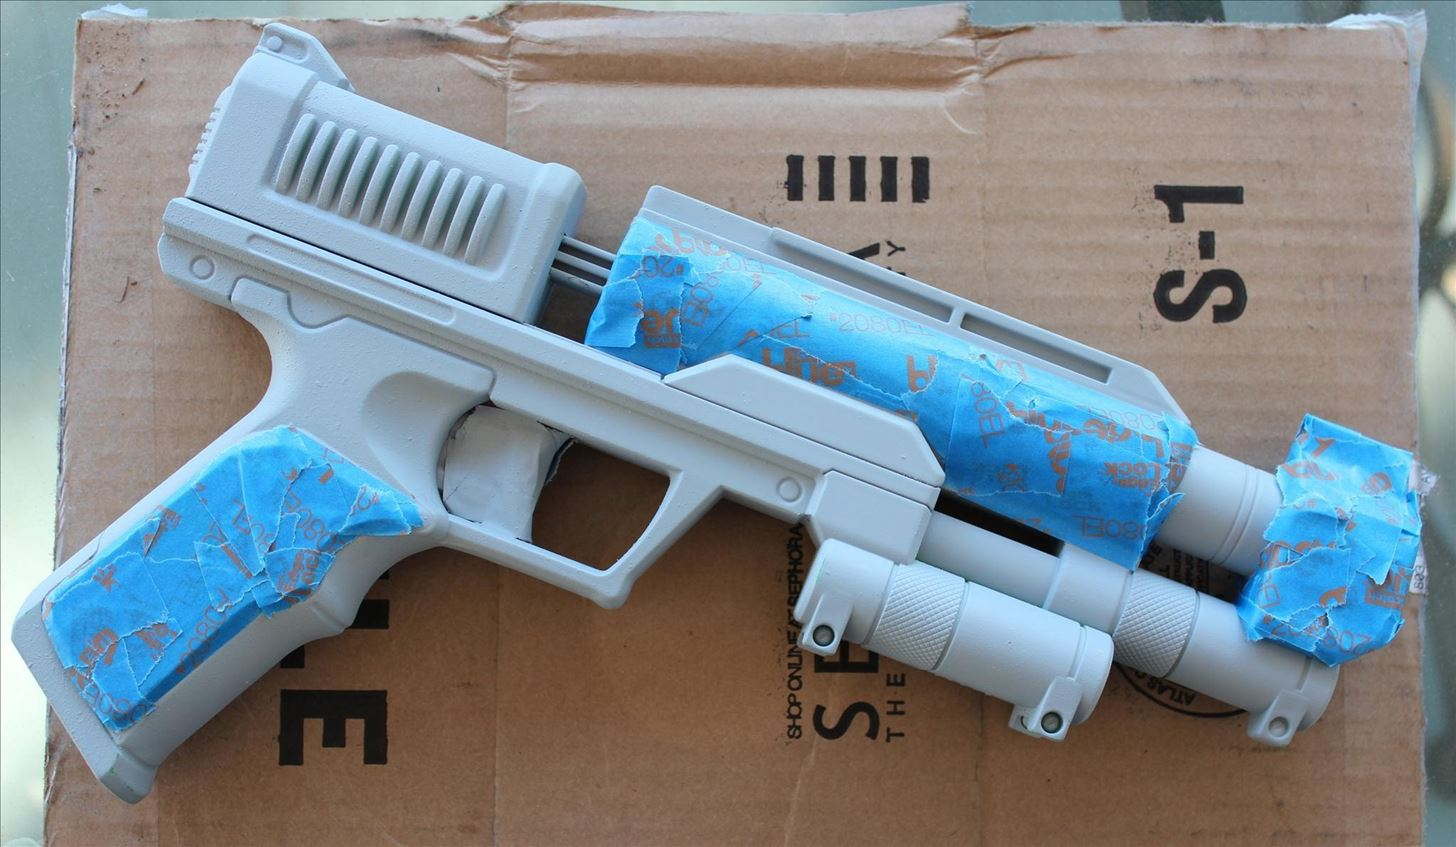 The Best Way To Spray Paint A Nerf Gun